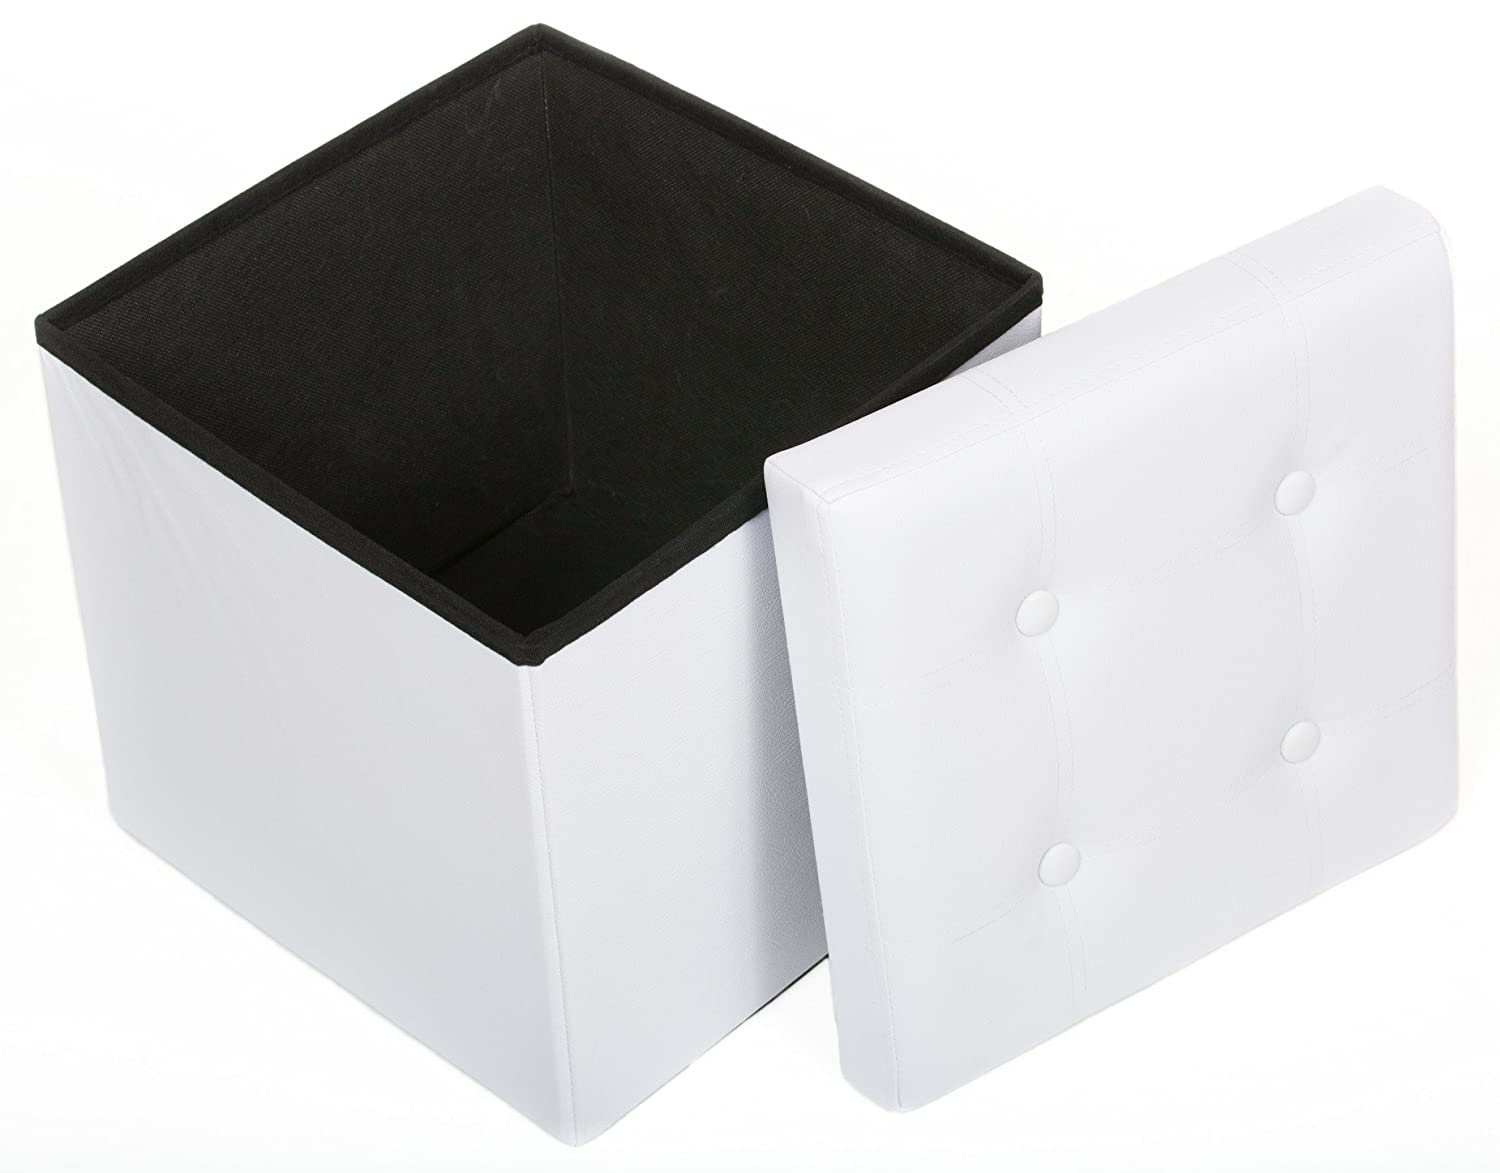 Fresh Home Elements Ottoman, Tufted 15 Storage Cube and Foot Rest, White Faux Leather